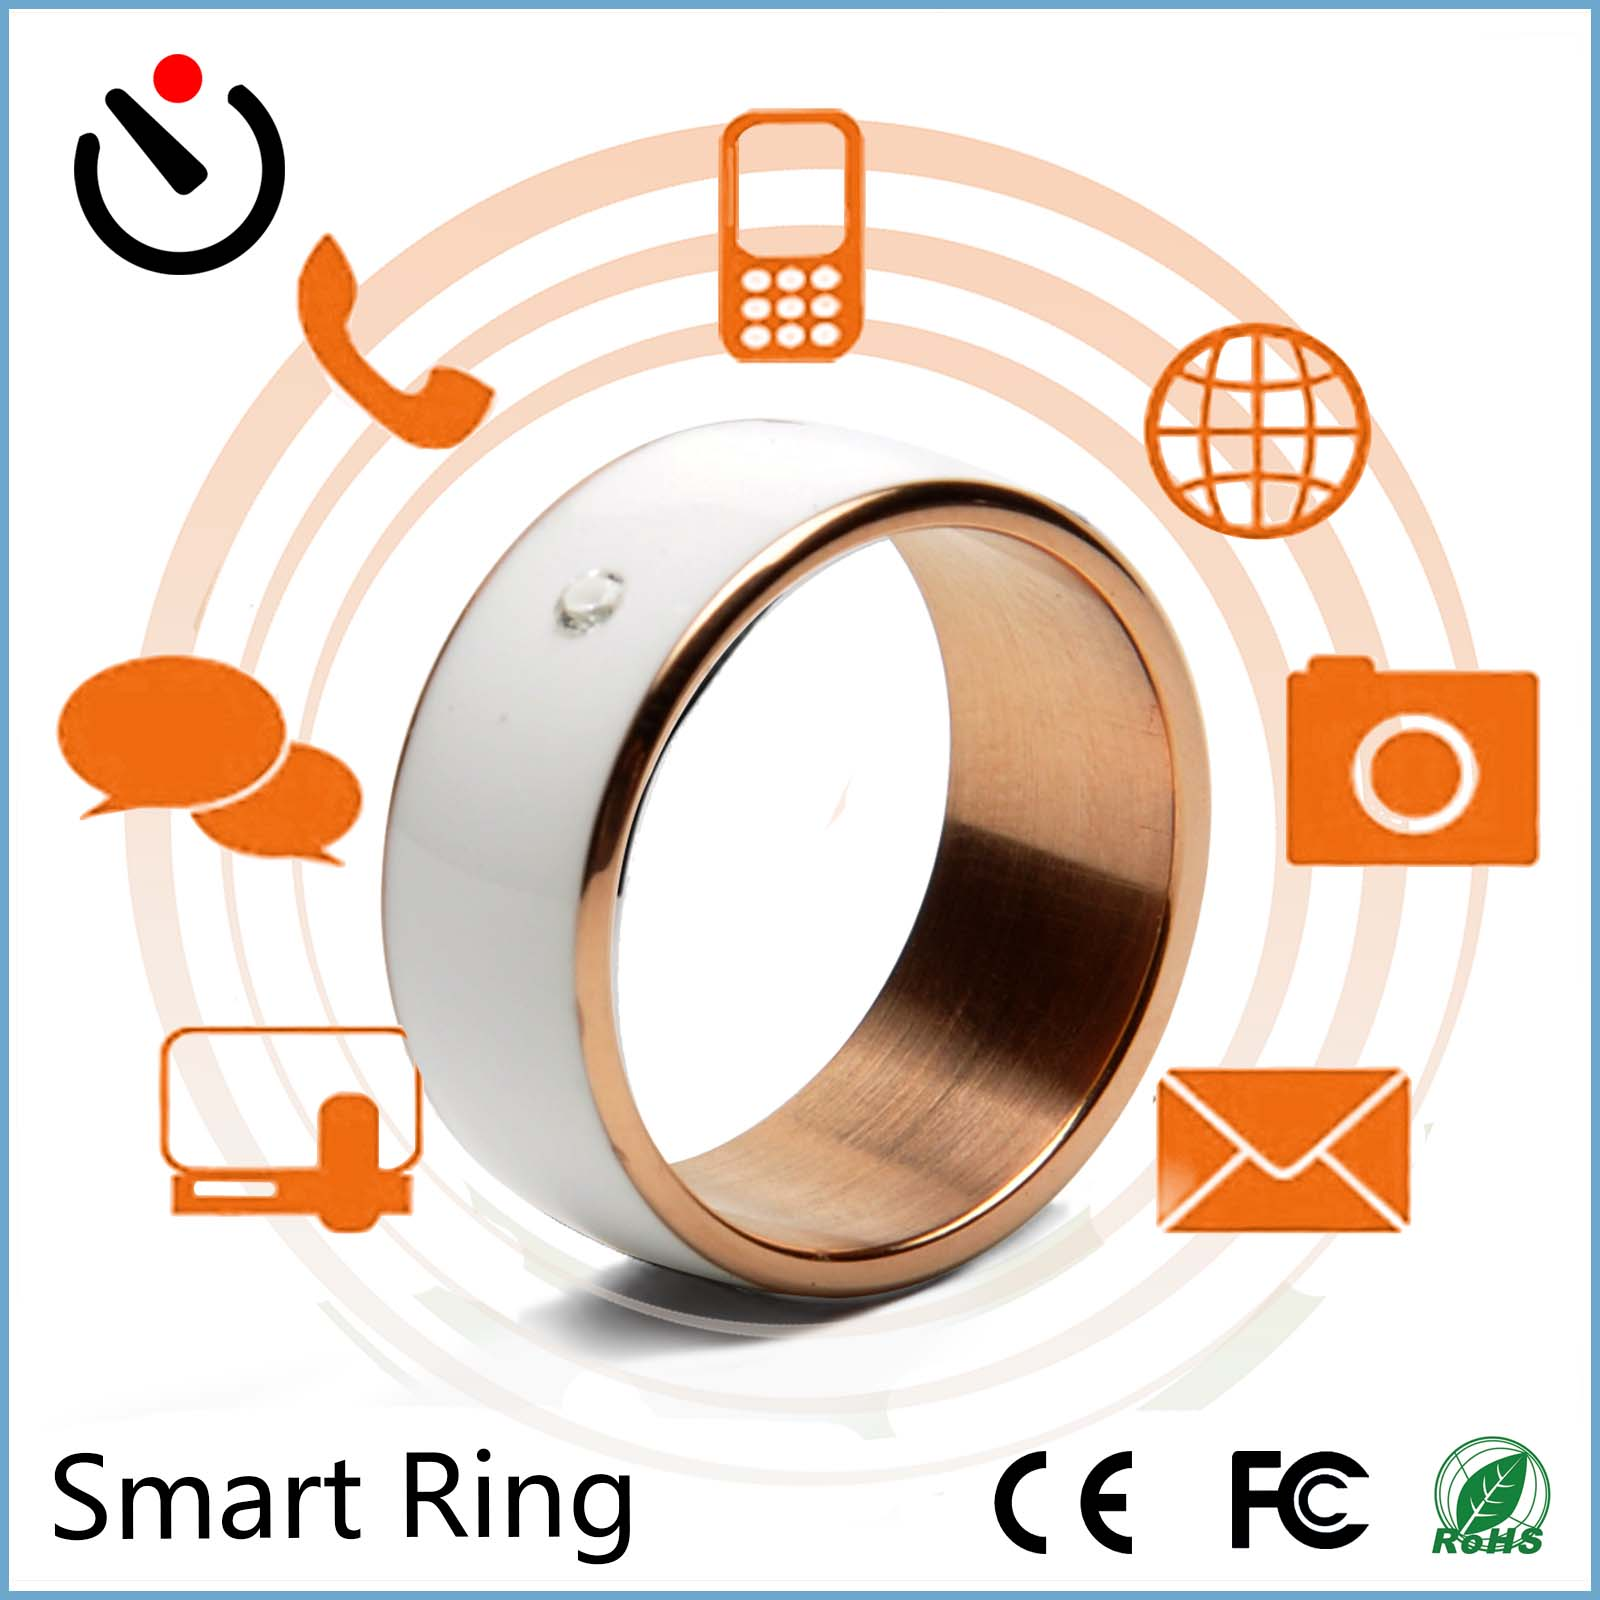 Jakcom Smart R I N G Consumer Electronics Home Telephones Land Line Phones Hosted Voip Cell Phone Shop(China (Mainland))